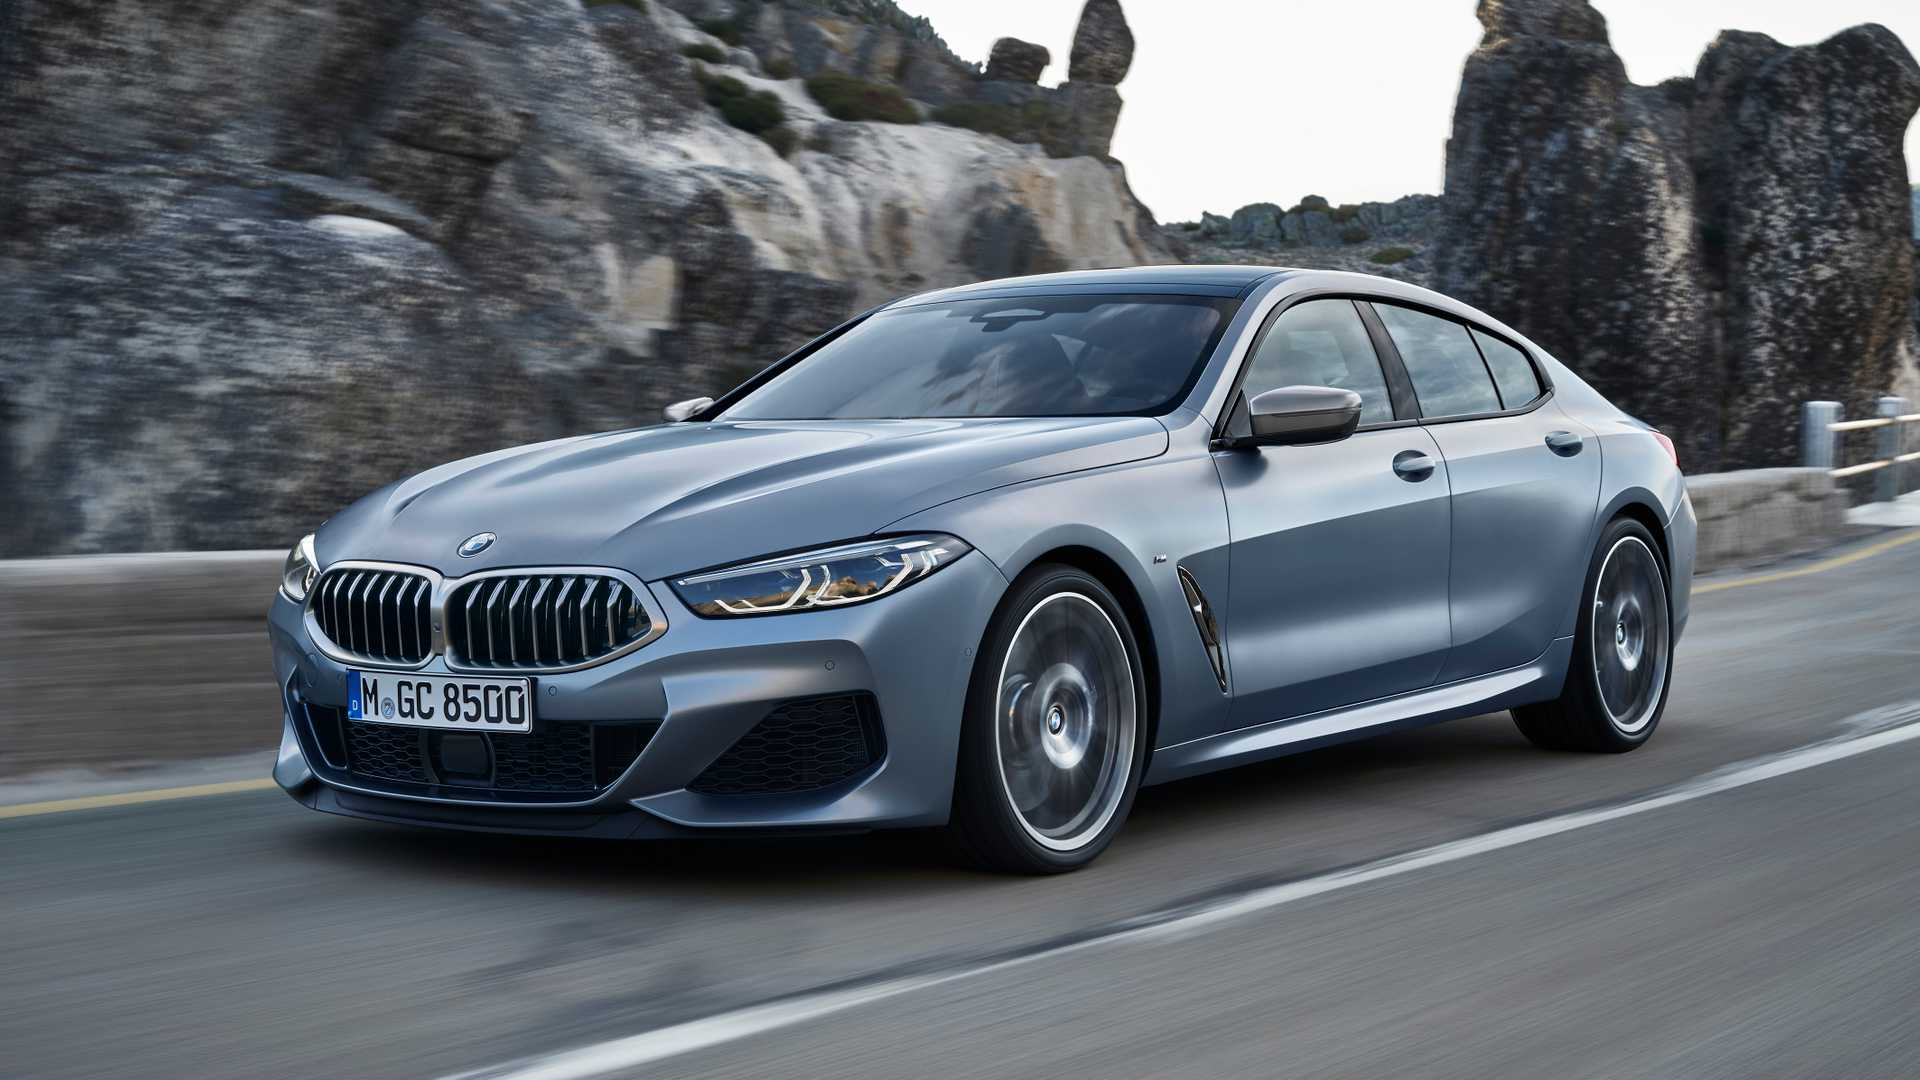 The 2020 BMW 8 series Gran Coupe is the real deal